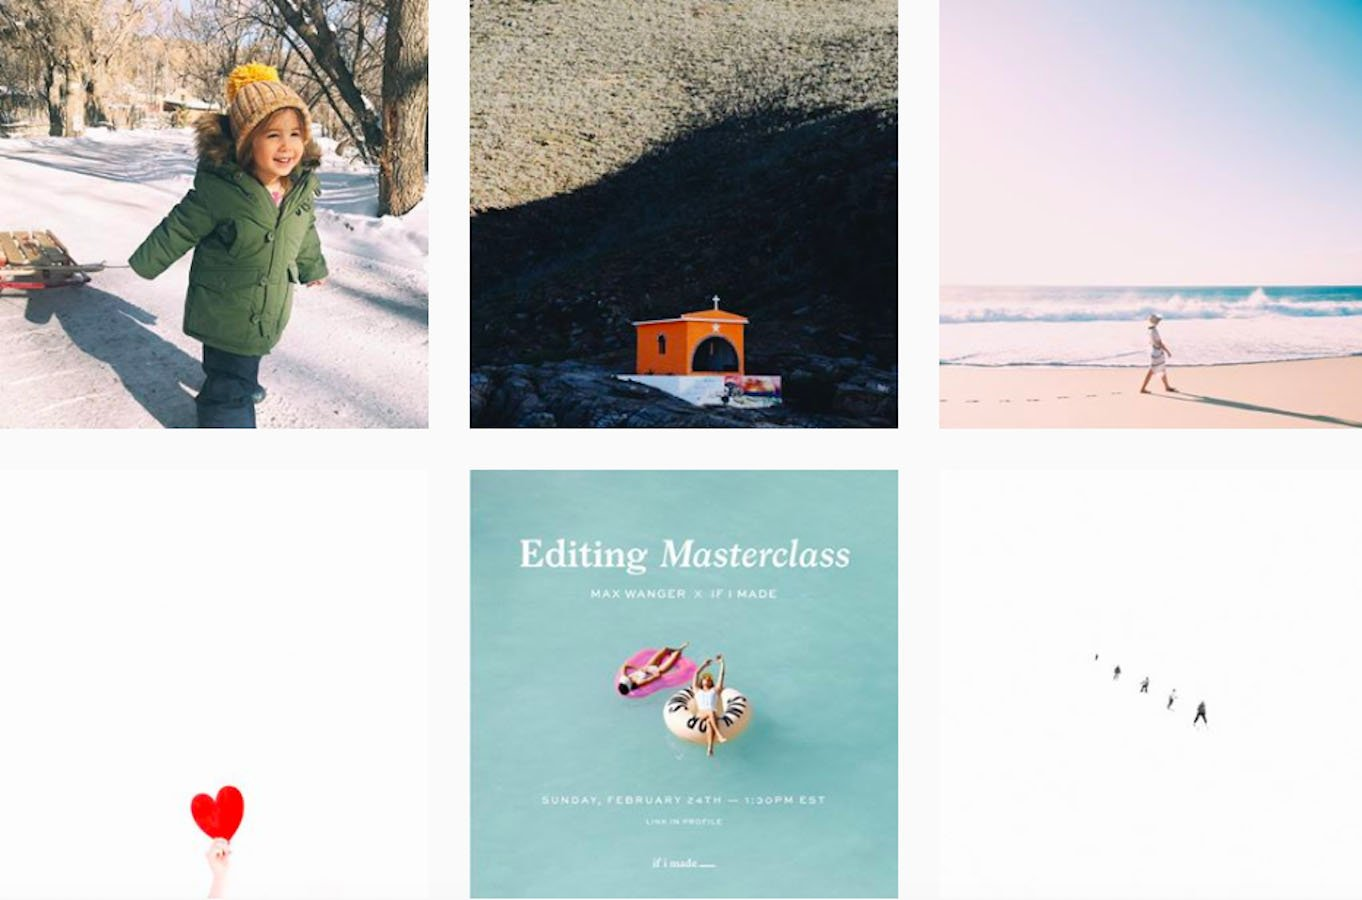 Web Design Inspiration: 110+ Accounts On Instagram and 10+ Best UX & Web Design Books in 2020 - maxwanger